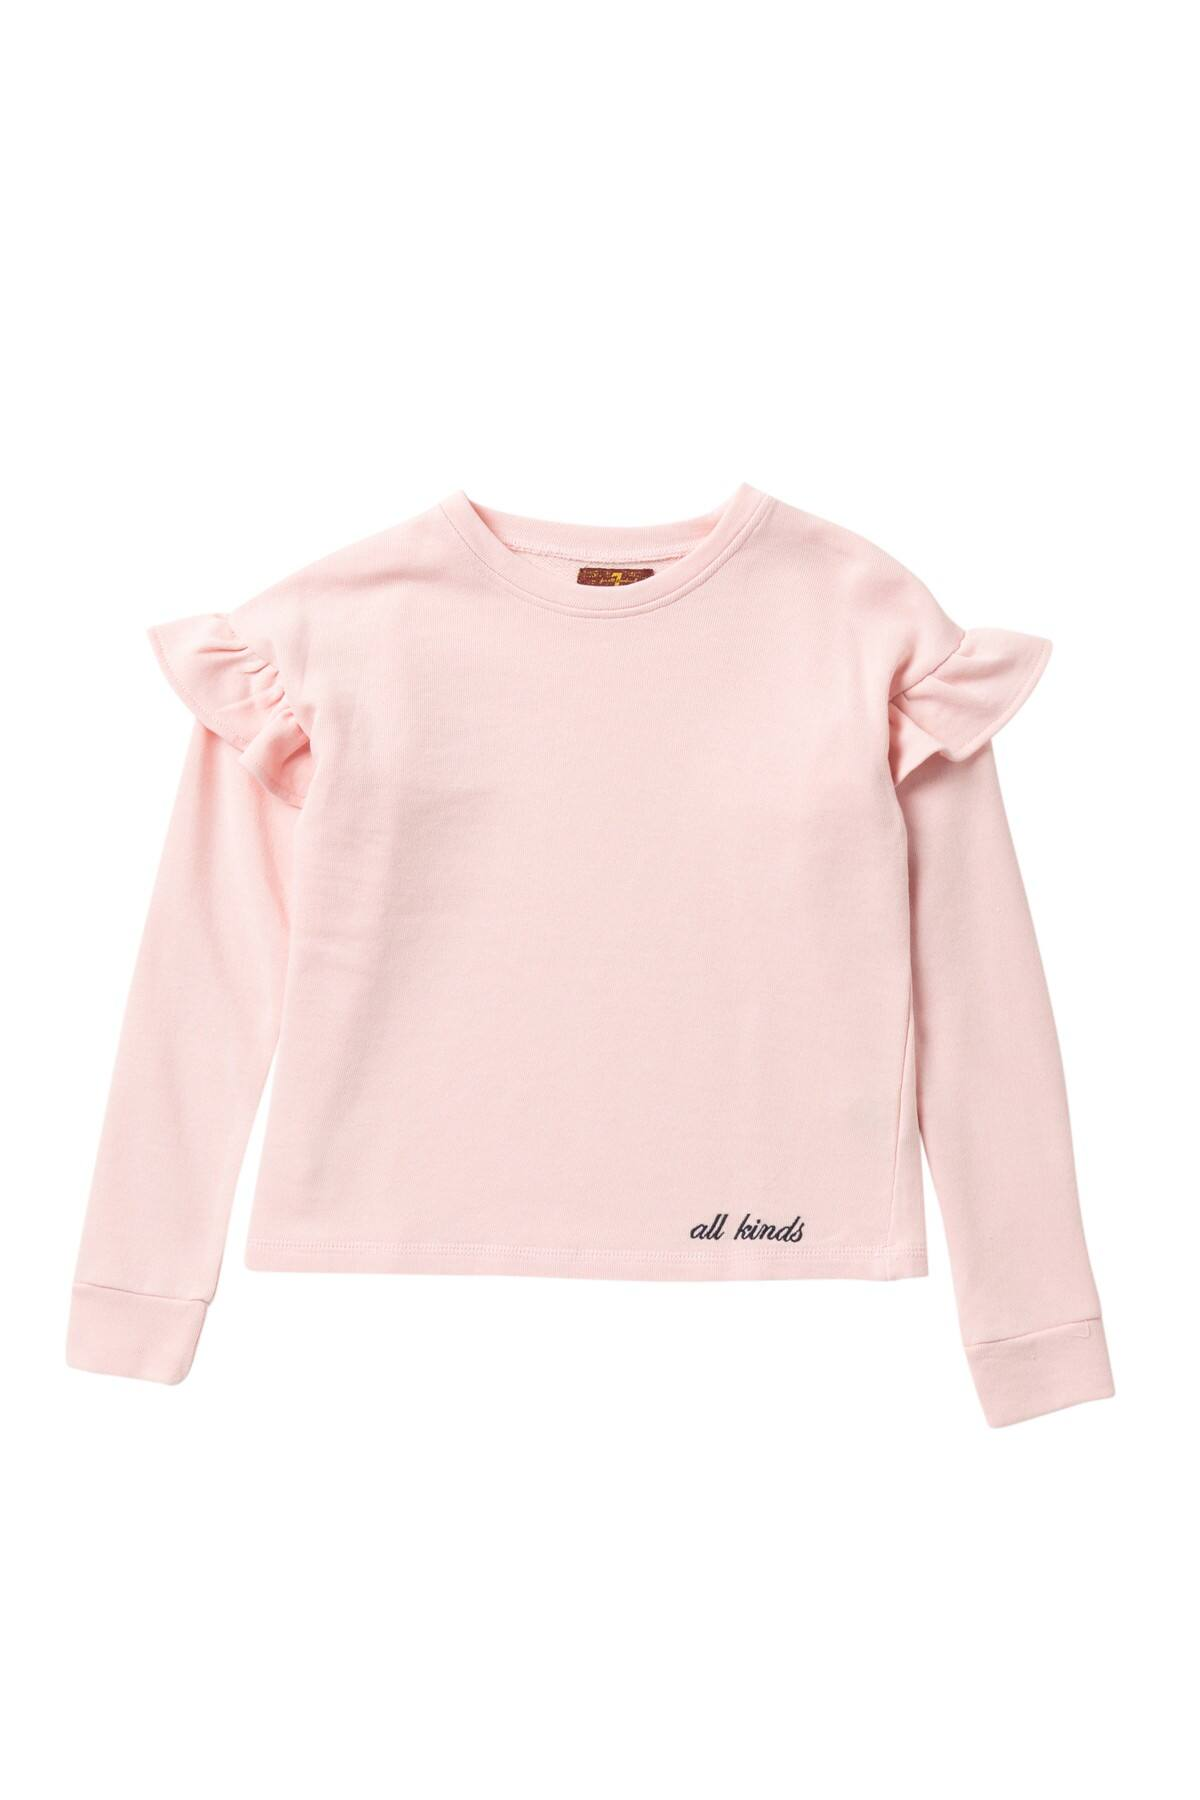 7 For All Mankind Pink Ruffle Sweatshirt Big Girls